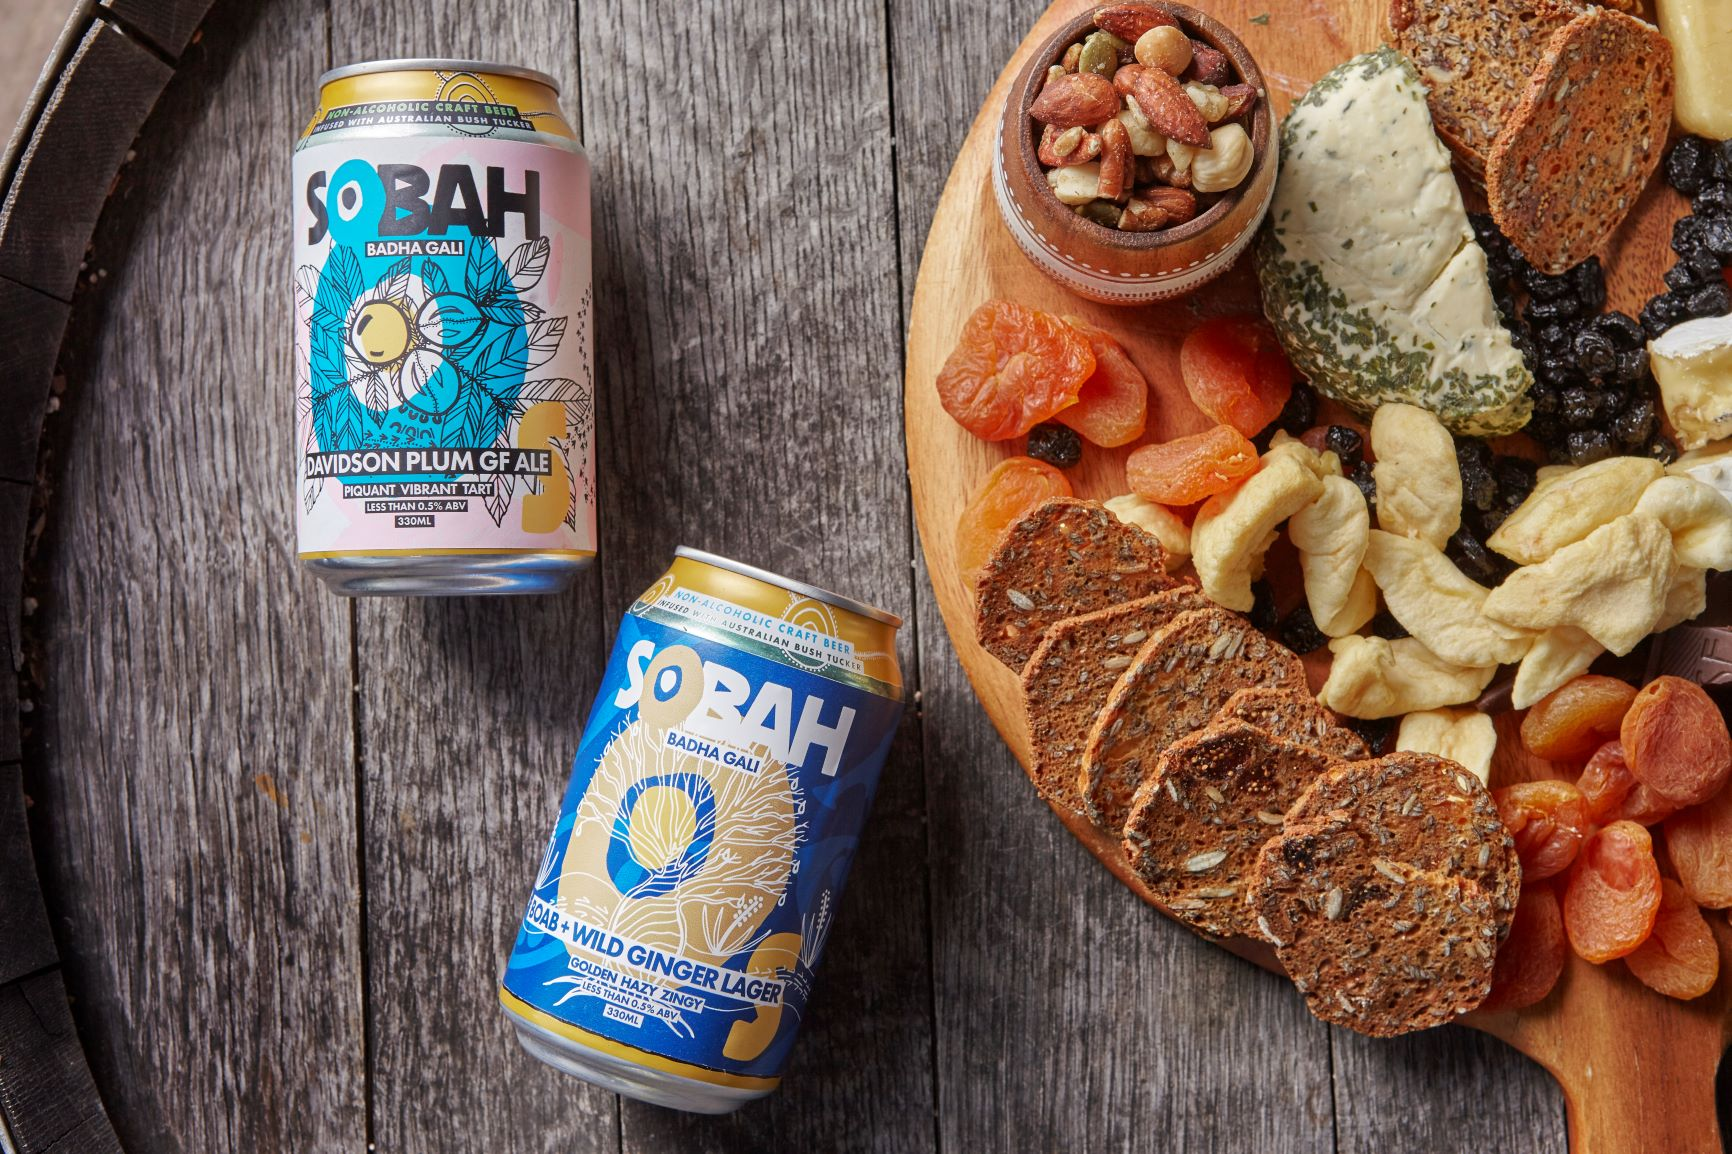 Sobah Non-Alcoholic Craft Beer special release limited edition